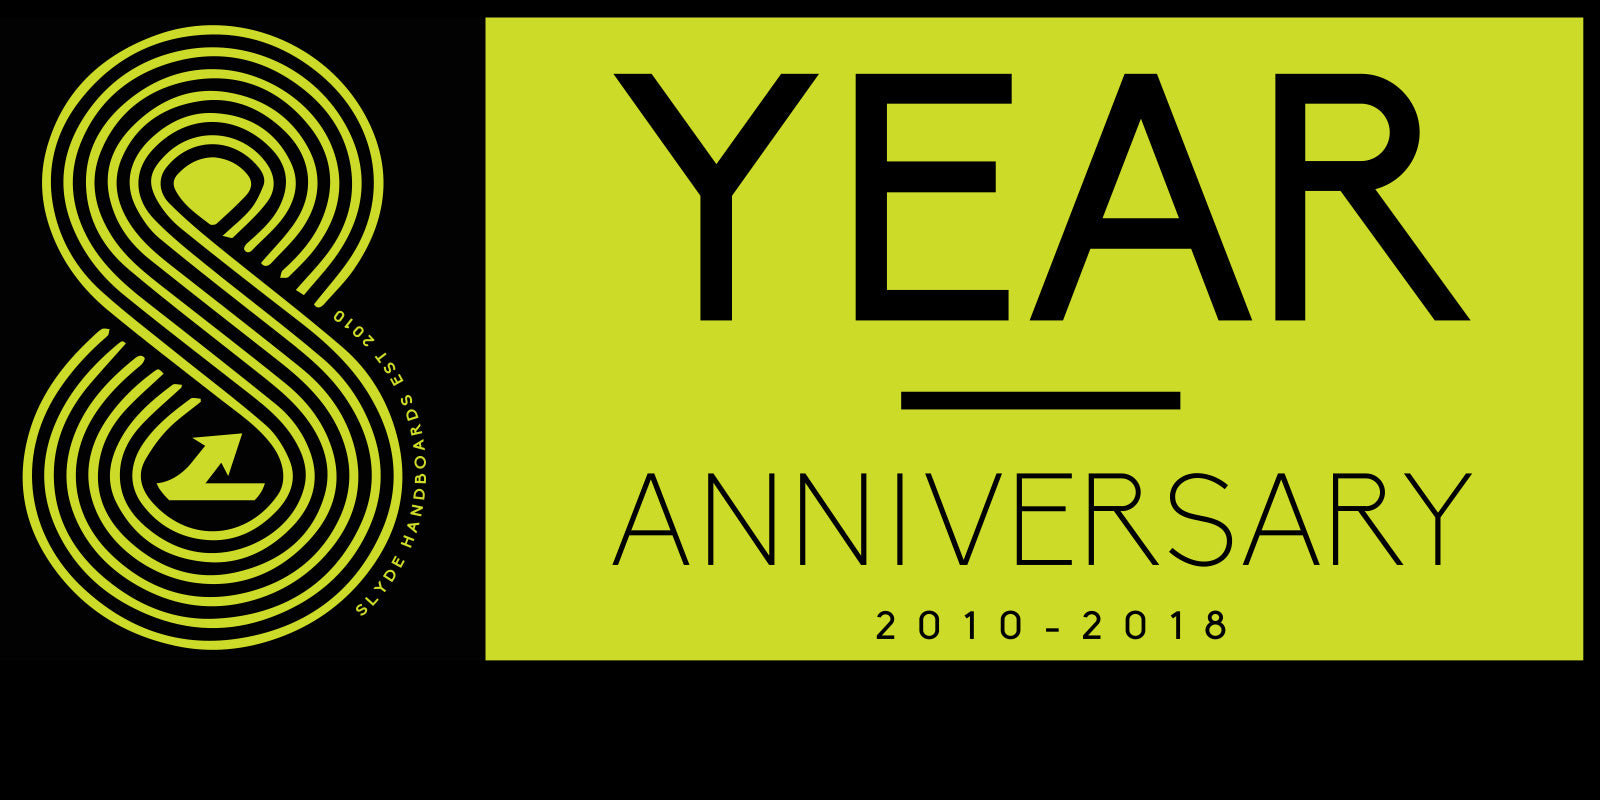 Happy Anniversary! Let's Celebrate 8 Years of Slyde Handboards 😁